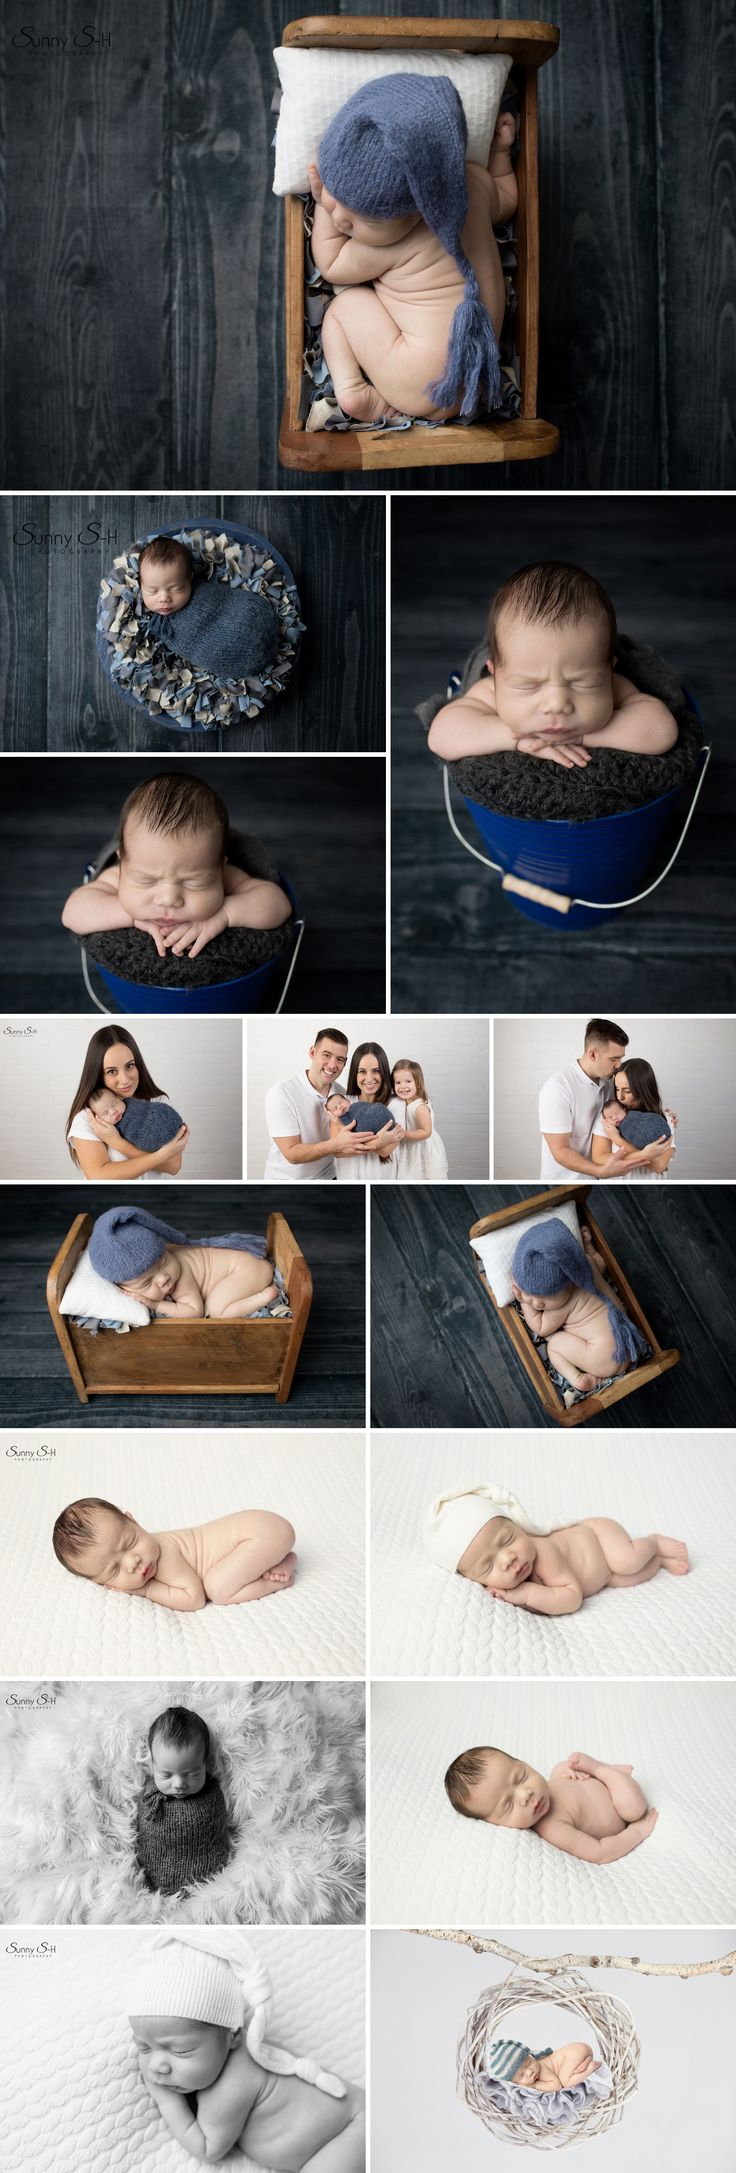 8 day old Madden and his adorable navy and white themed studio newborn photo shoot using studio light. Sunny S-H Photography Winnipeg